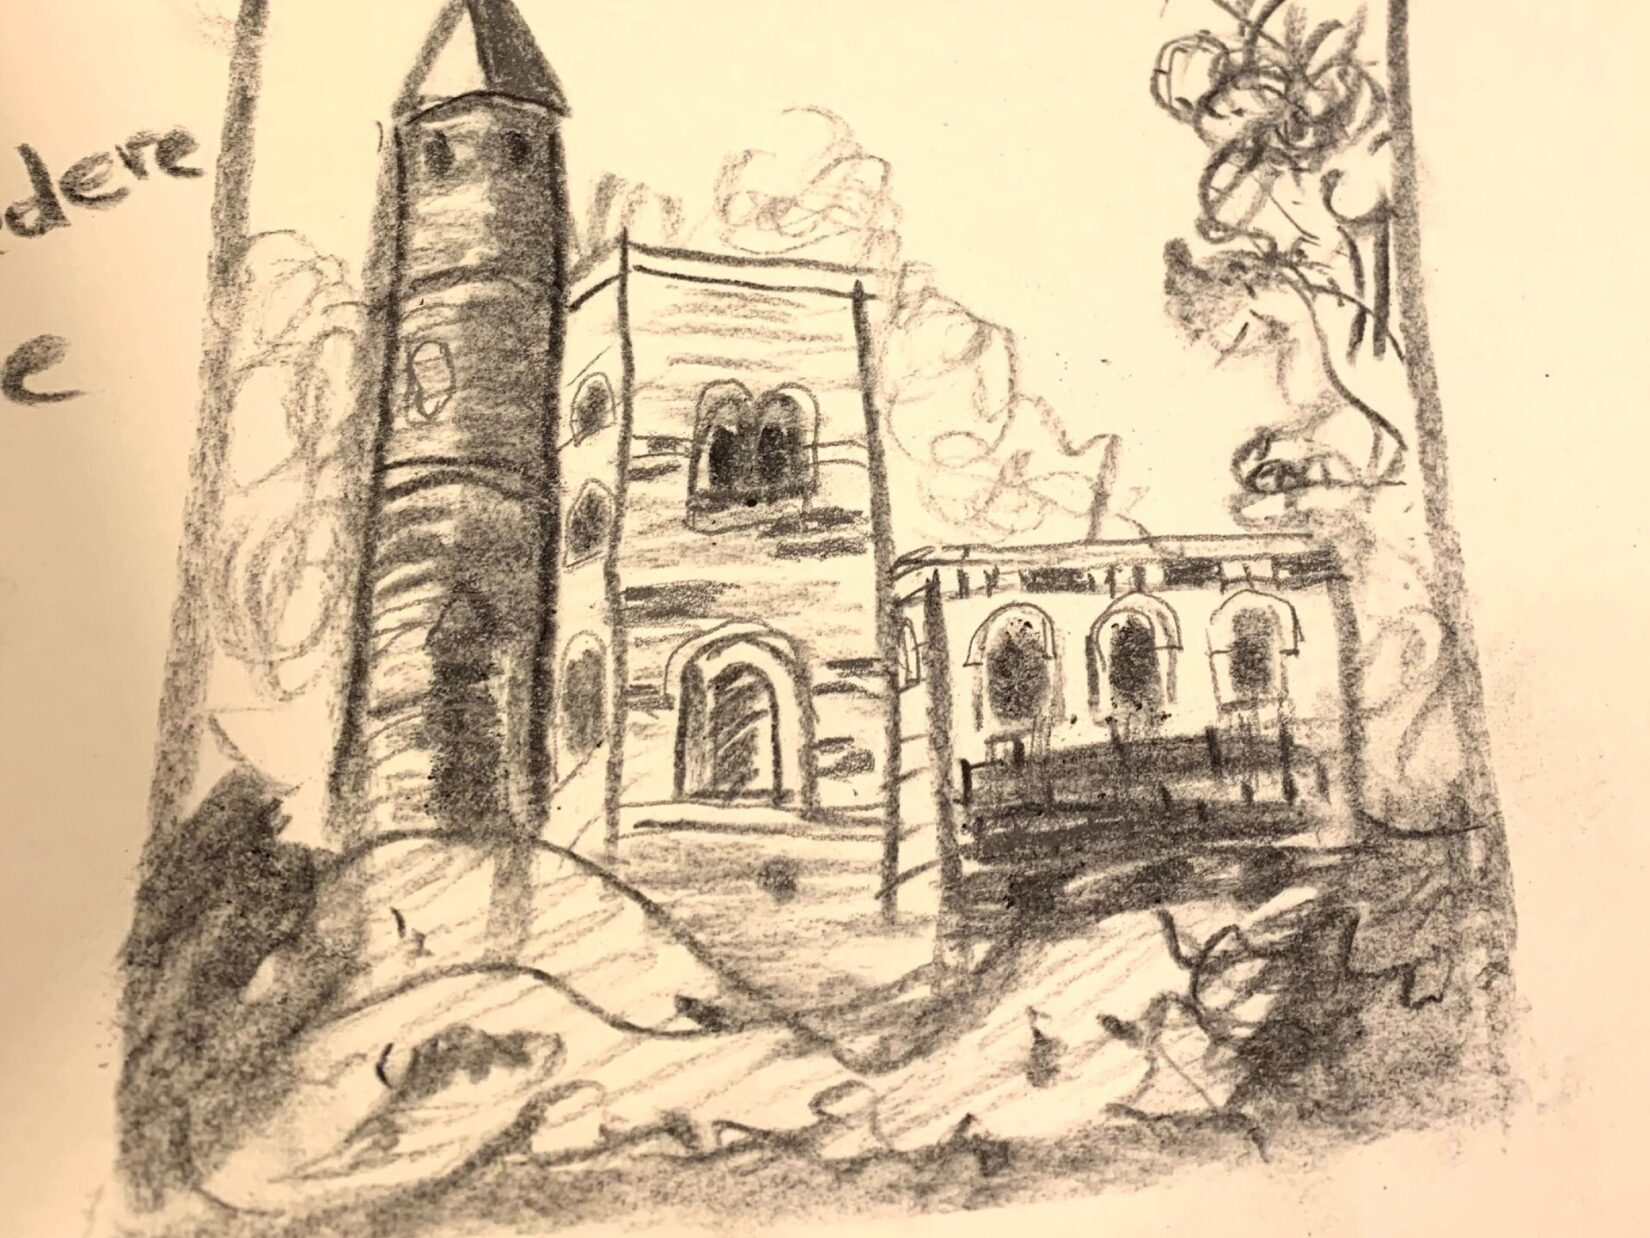 A charcoal sketch of the castle